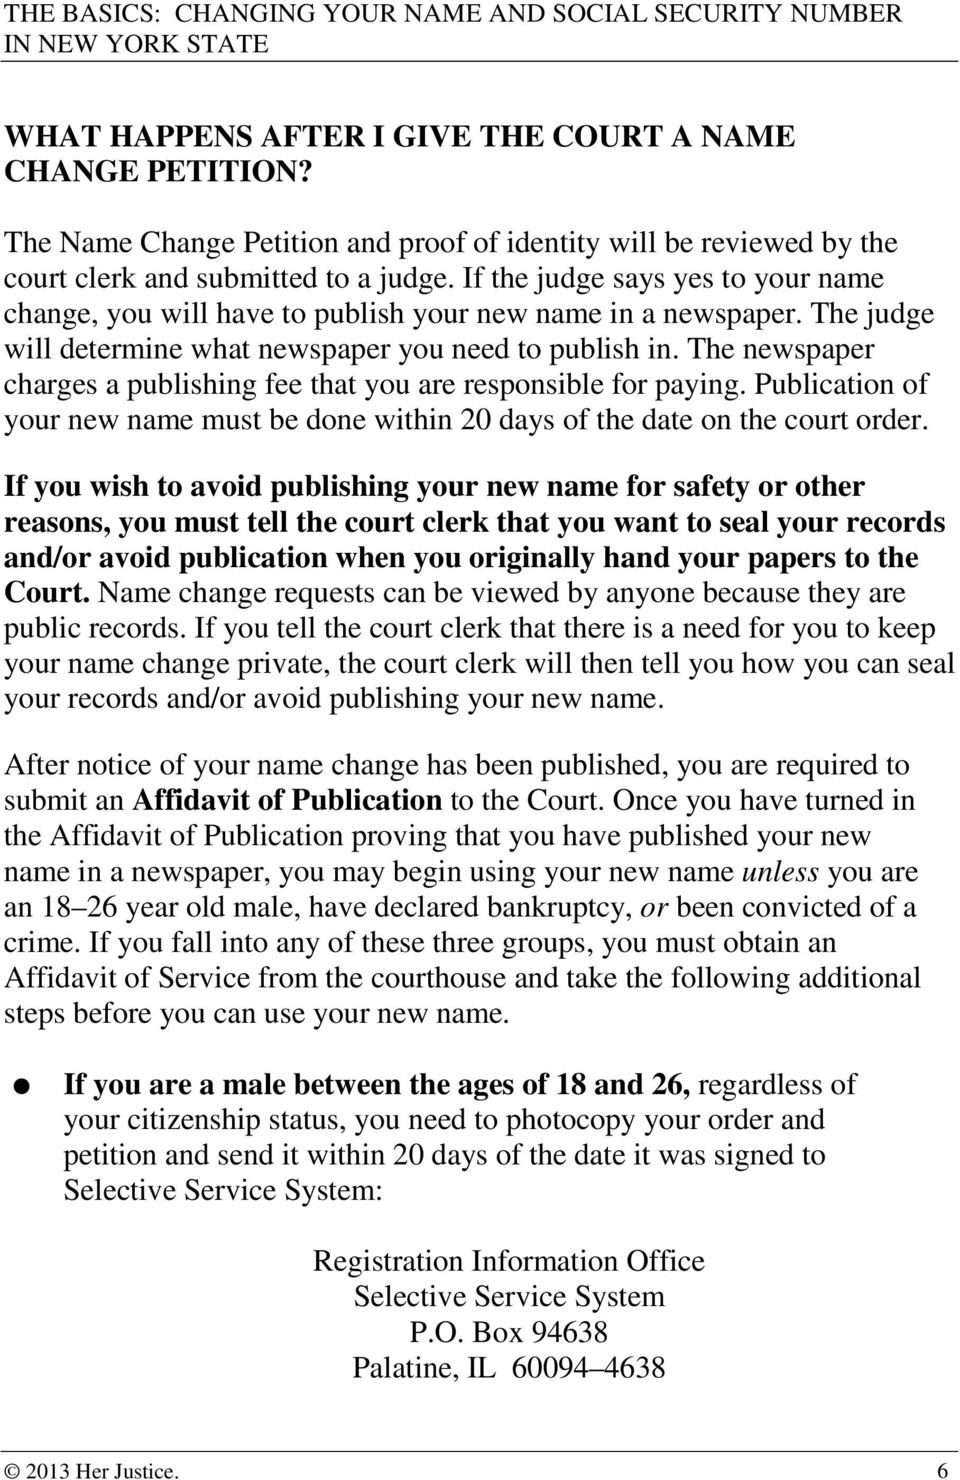 The newspaper charges a publishing fee that you are responsible for paying. Publication of your new name must be done within 20 days of the date on the court order.